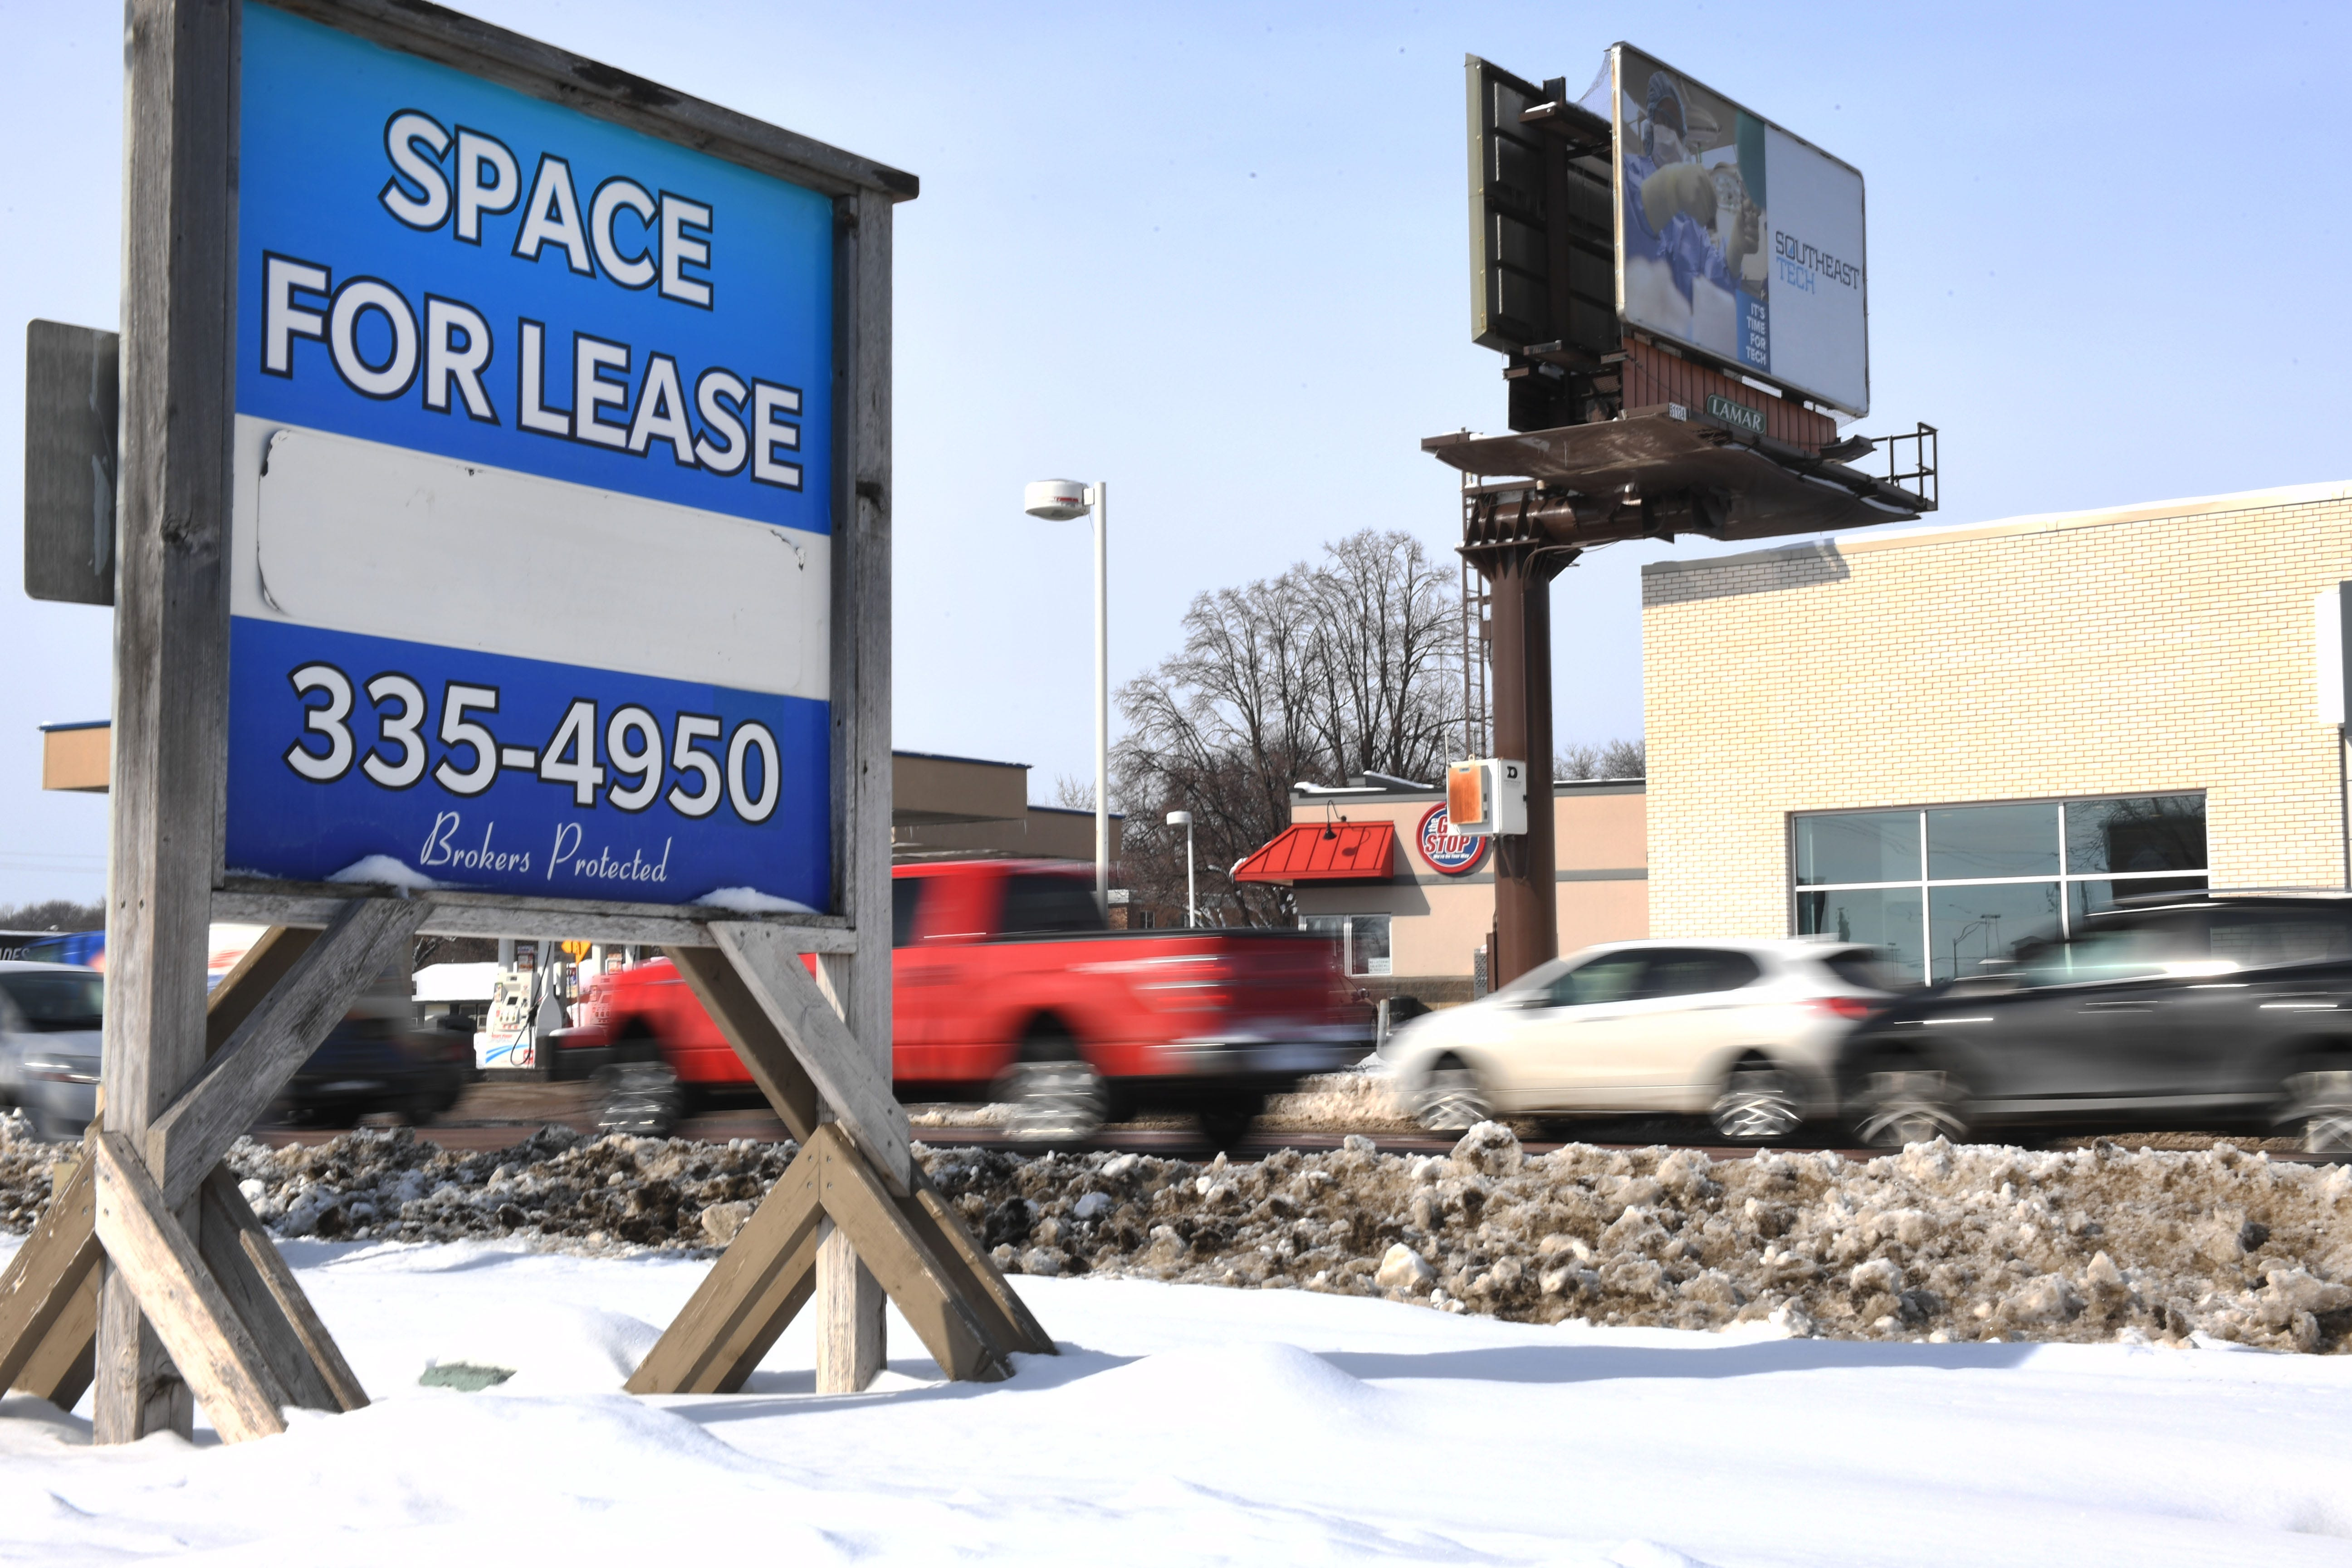 Bender Outlook: High vacancy raises questions for businesses on Sioux Falls' 41st Street